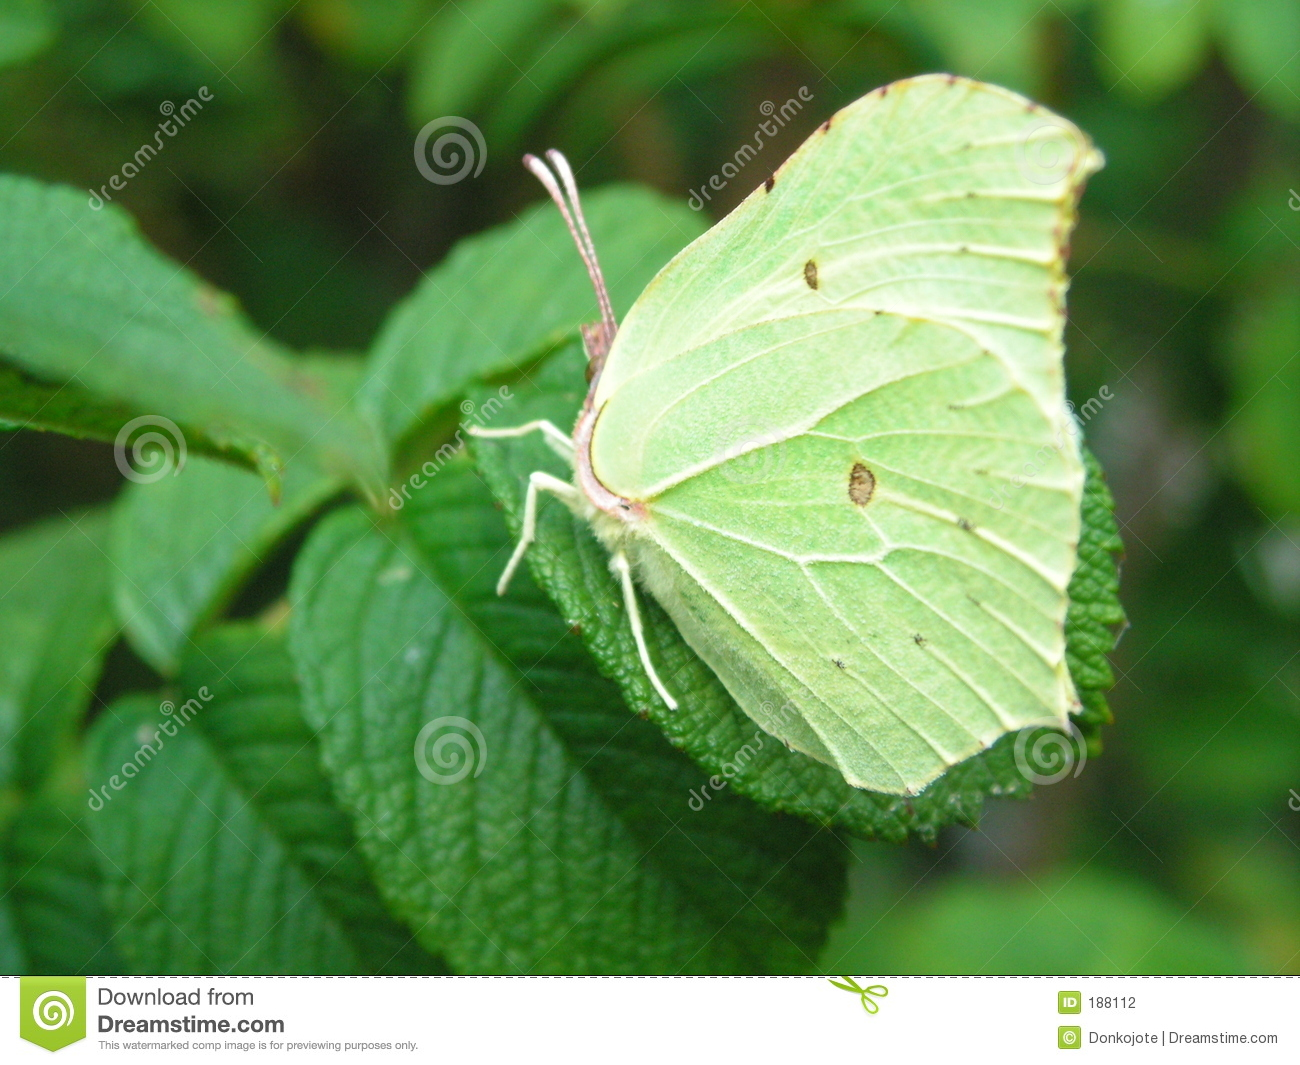 Butterfly Camouflage Stock Photography - Image: 188112